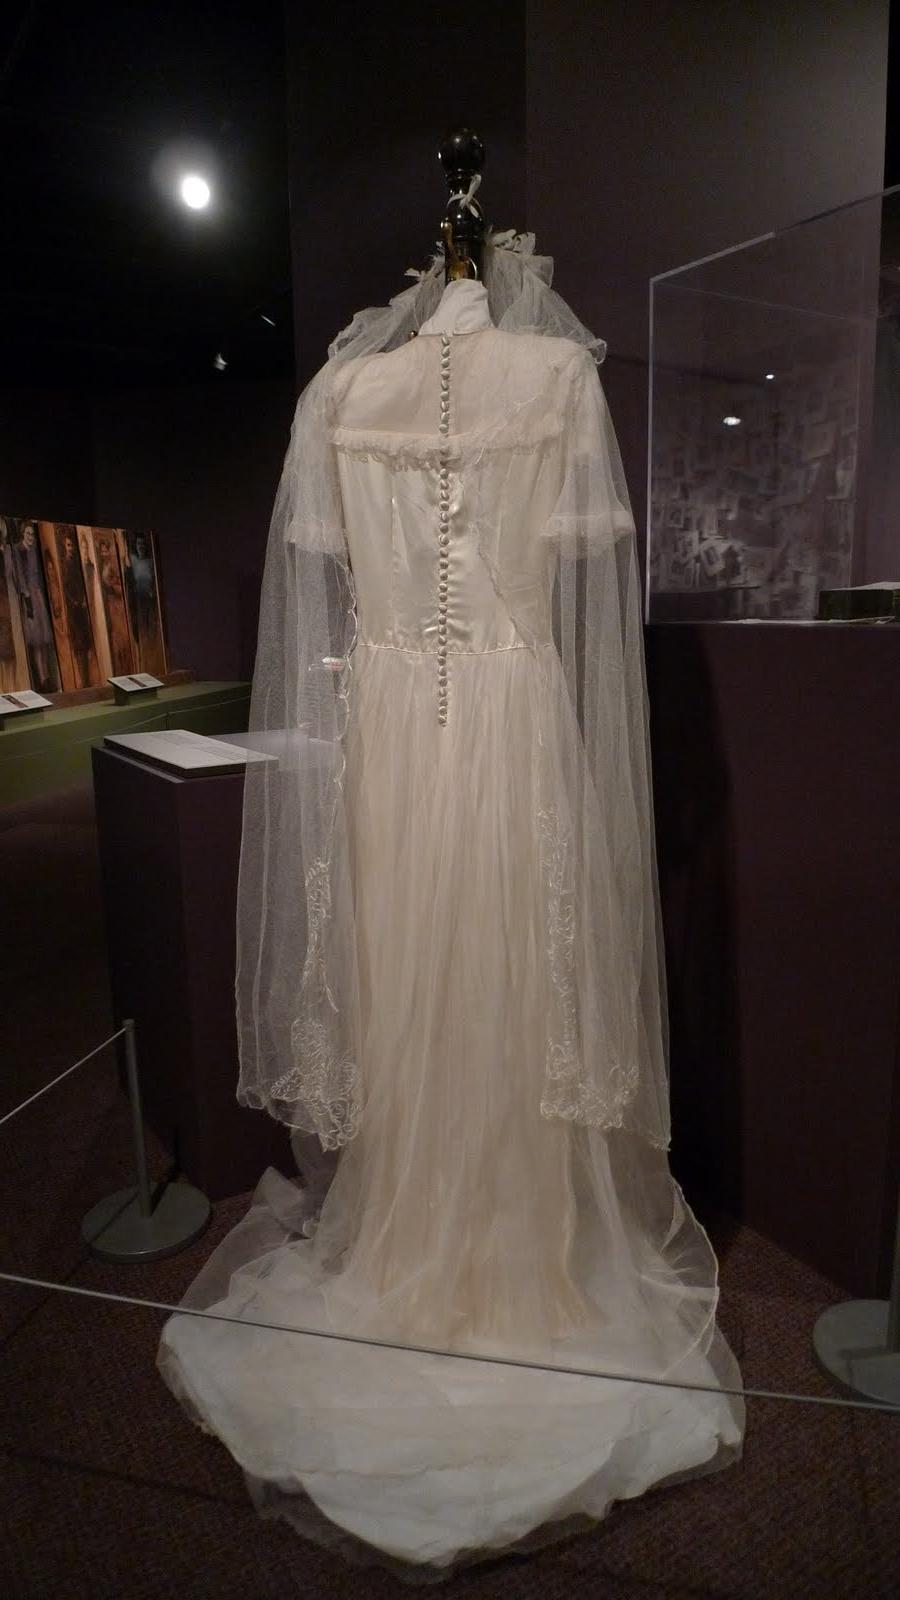 This the wedding dress of a